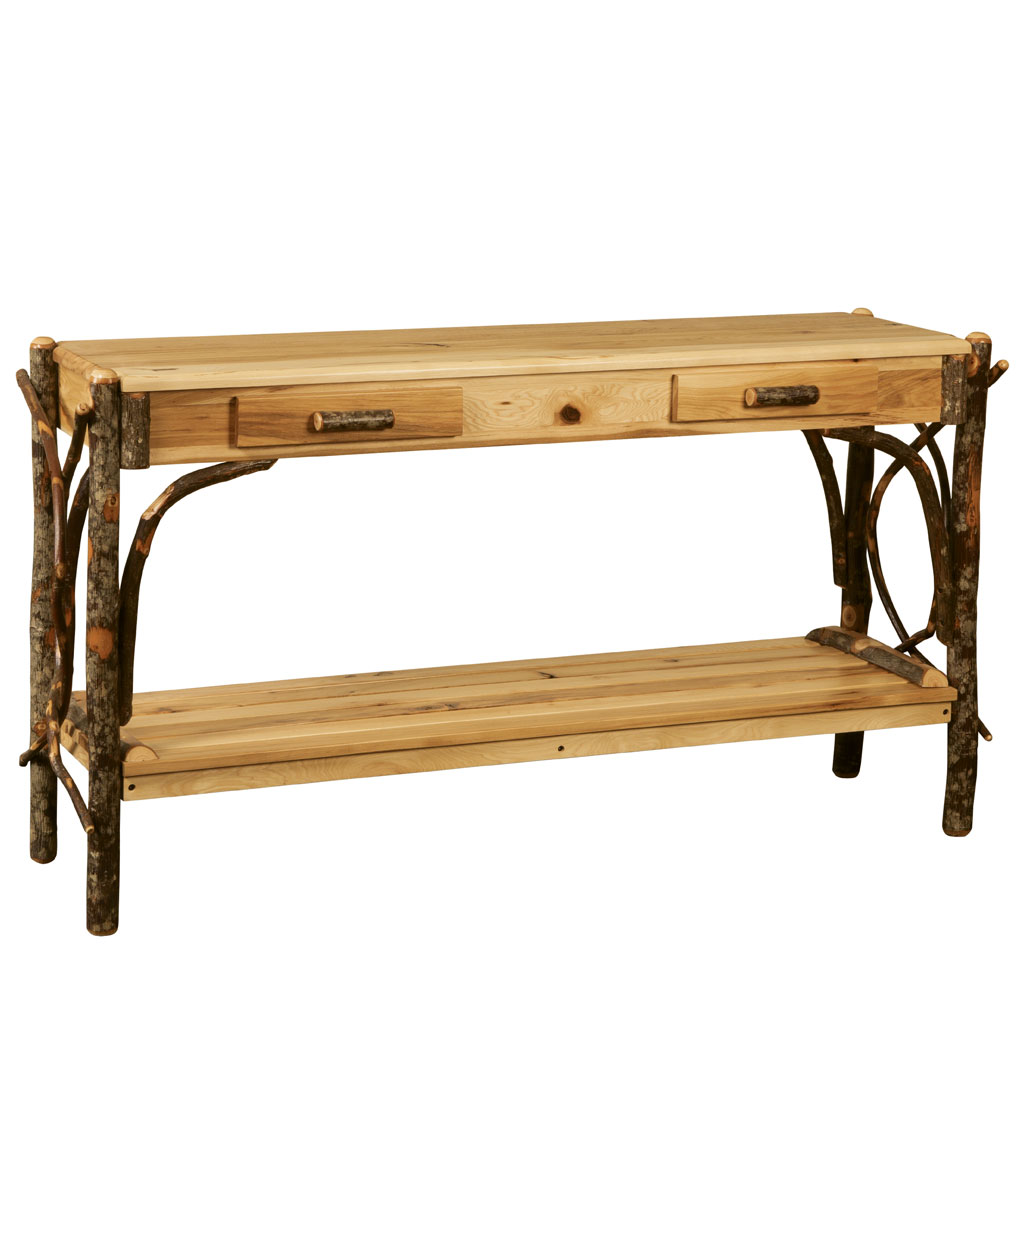 Surprising Classic Log Sofa Table Alphanode Cool Chair Designs And Ideas Alphanodeonline